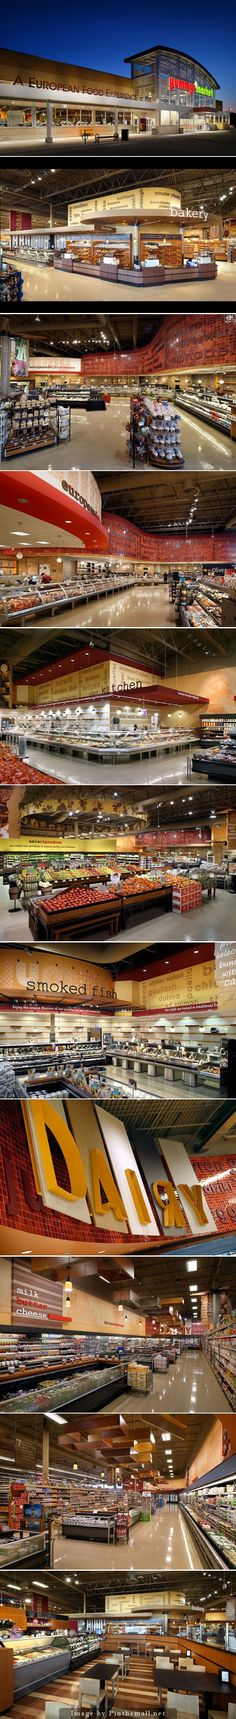 Yummy Market, Toronto - created on 2014-09-14 06:21:24